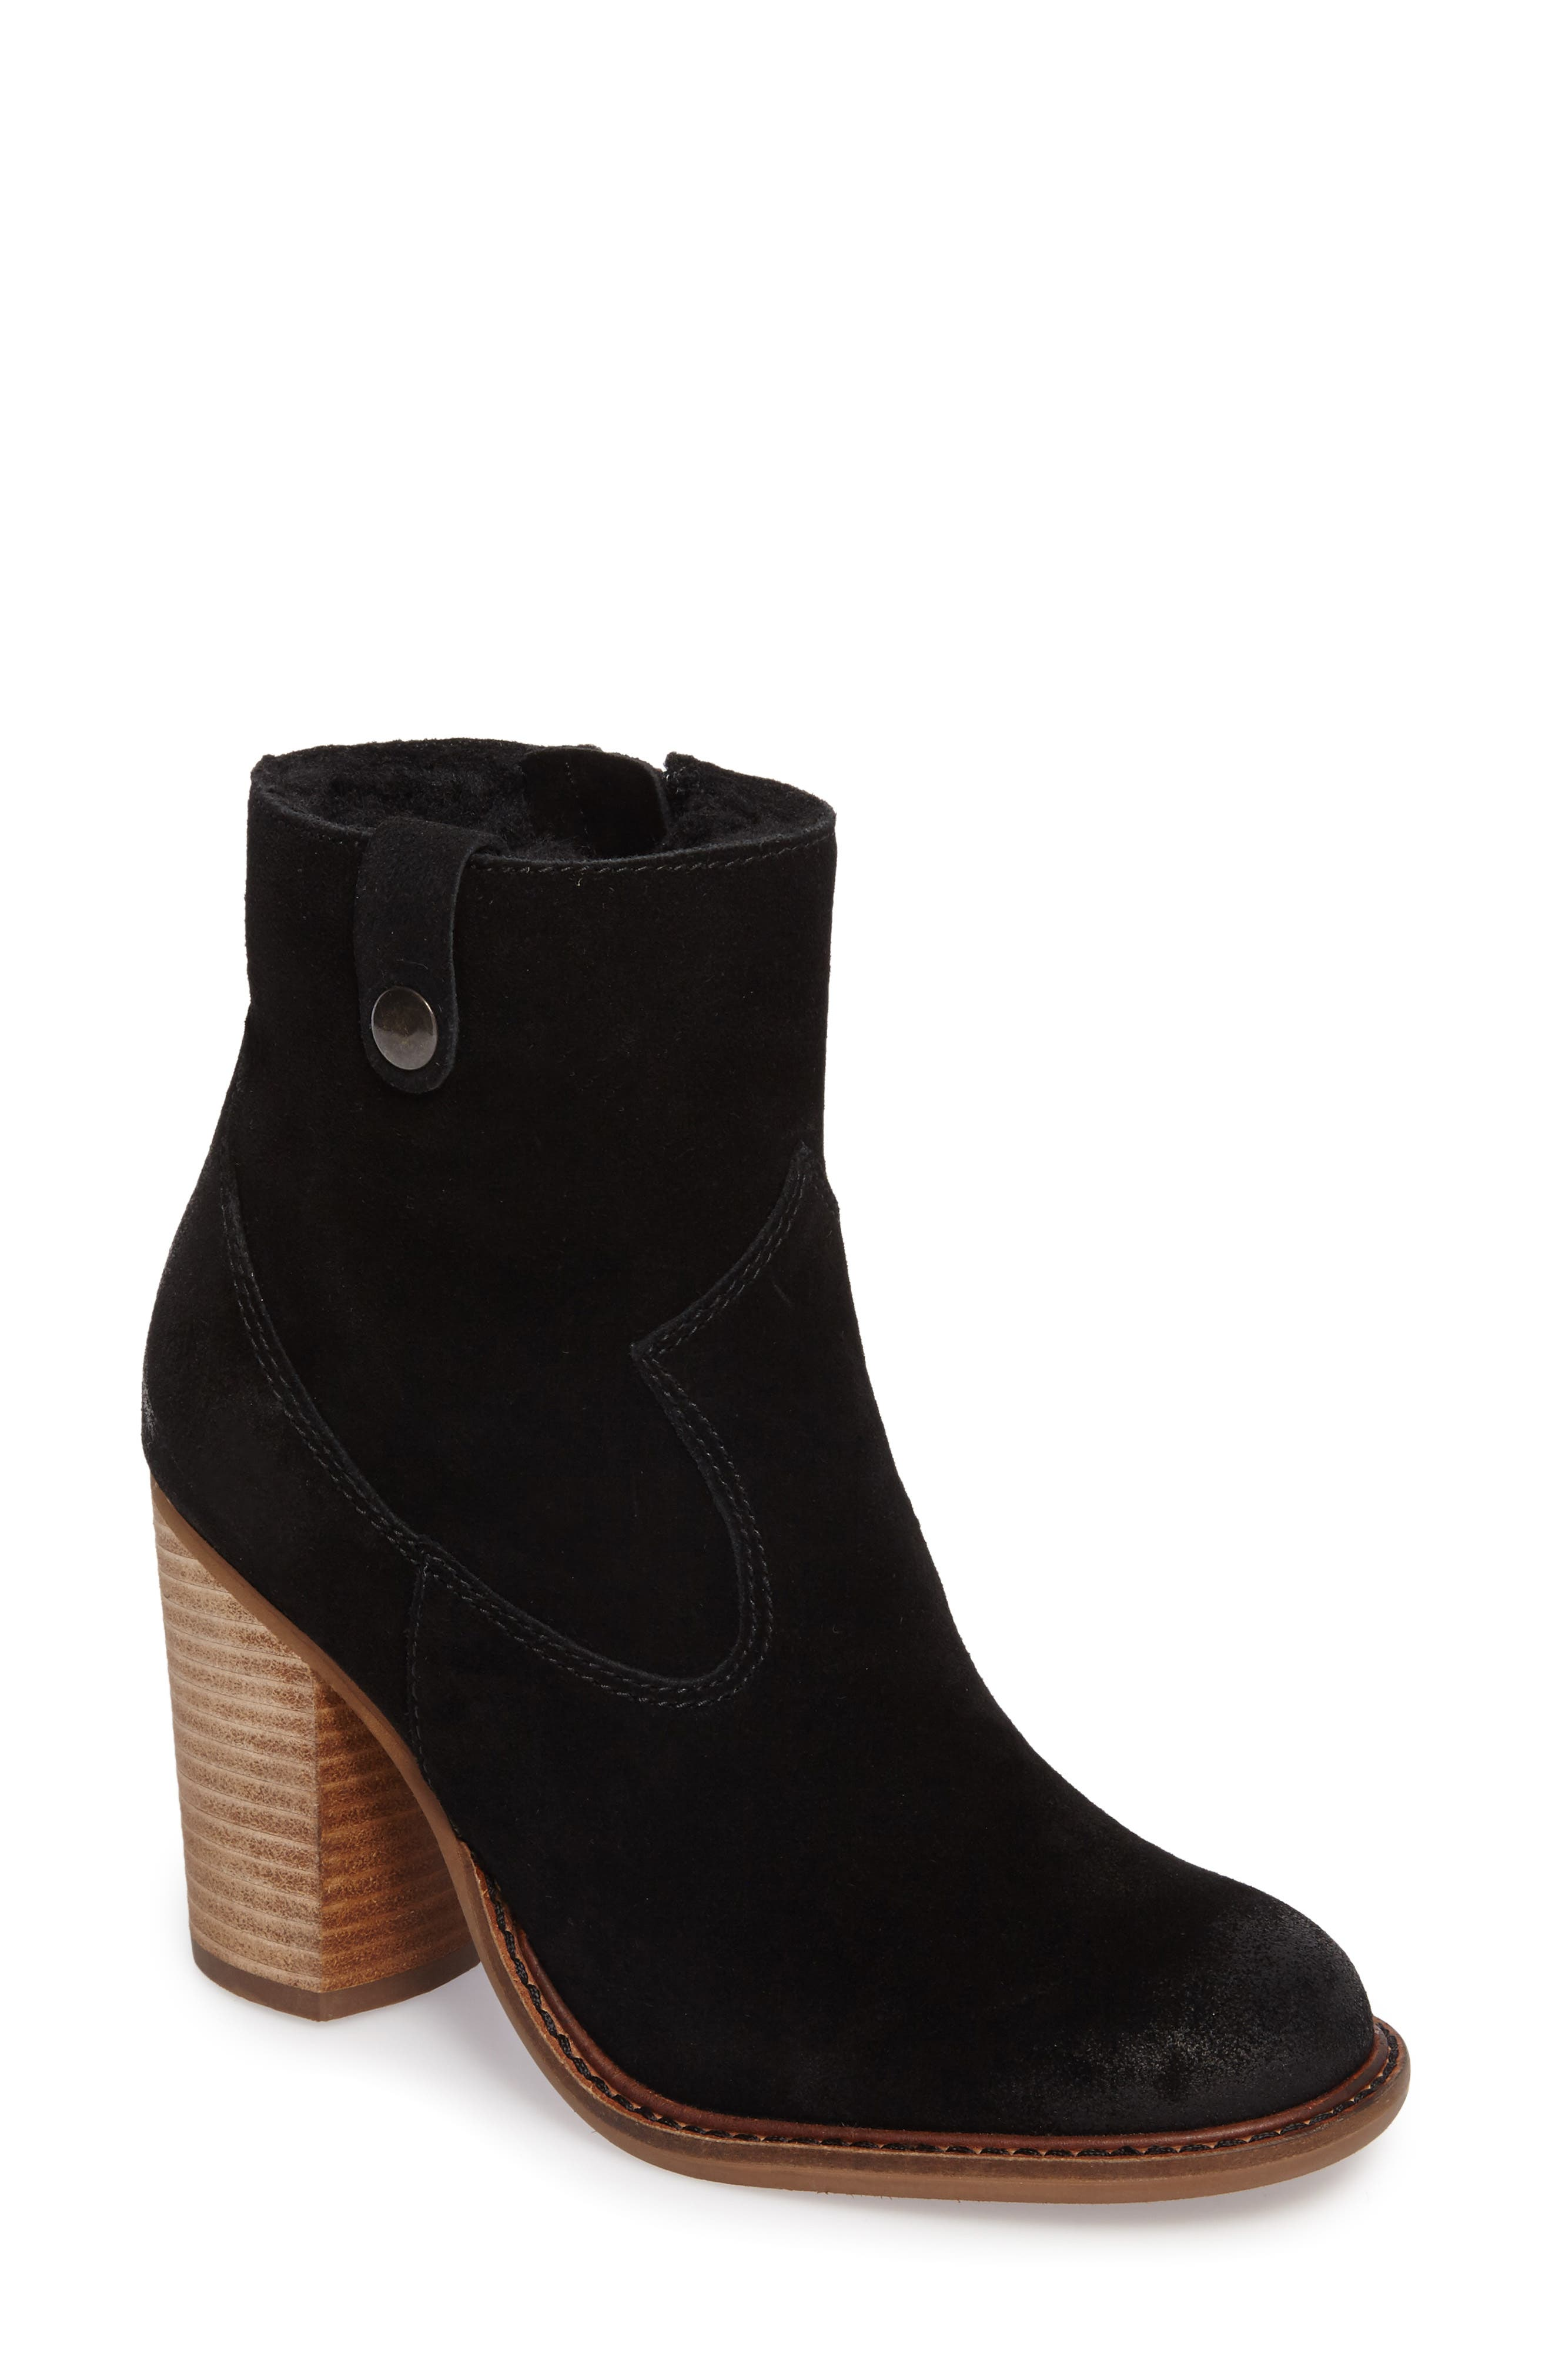 Legion Bootie with Faux Shearling Lining,                         Main,                         color, Black